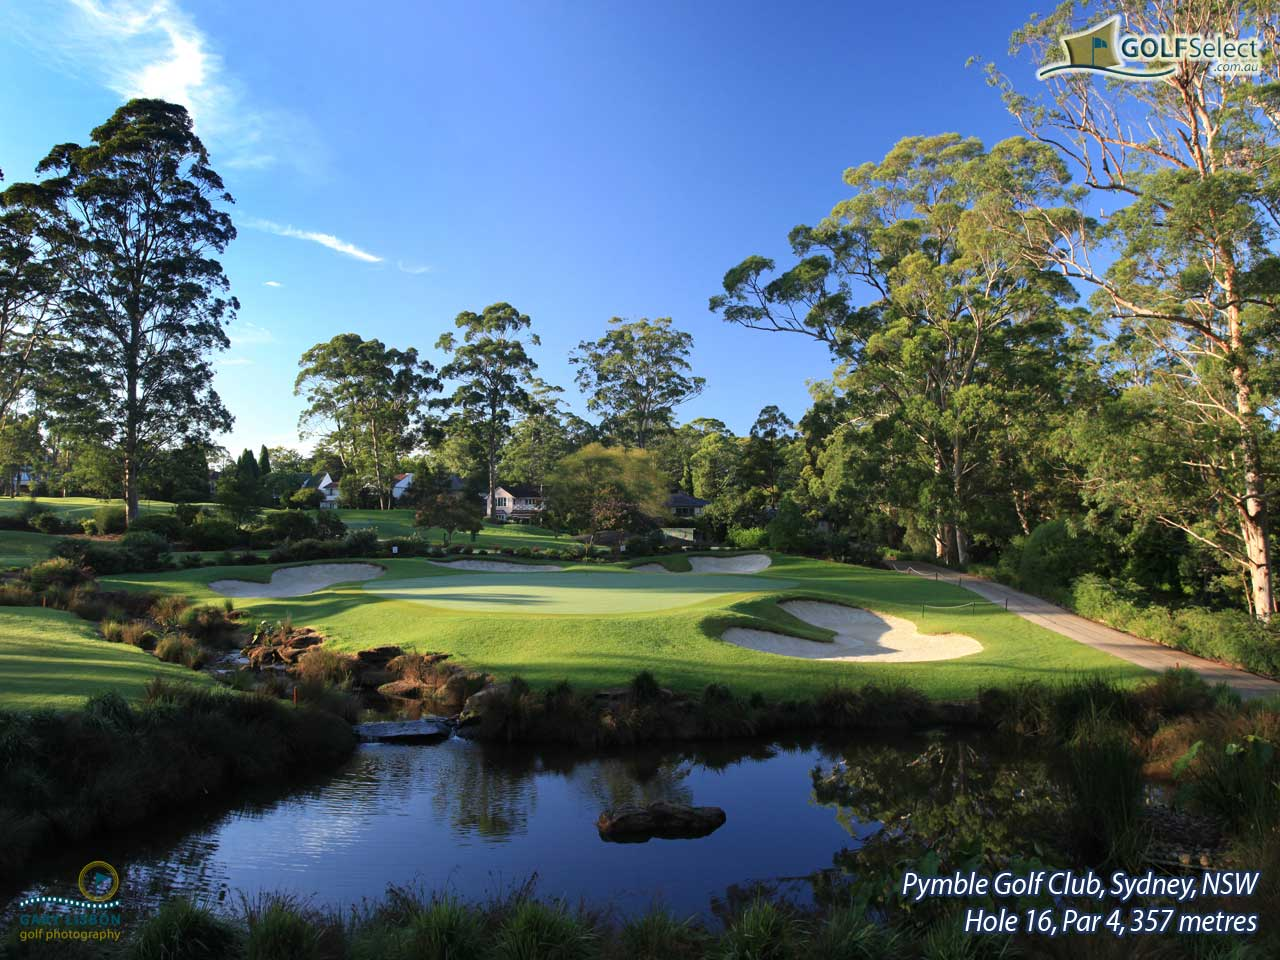 GOLFSelect - Golf Wallpaper - Pymble Golf Club - Hole 16, Par 4 ...